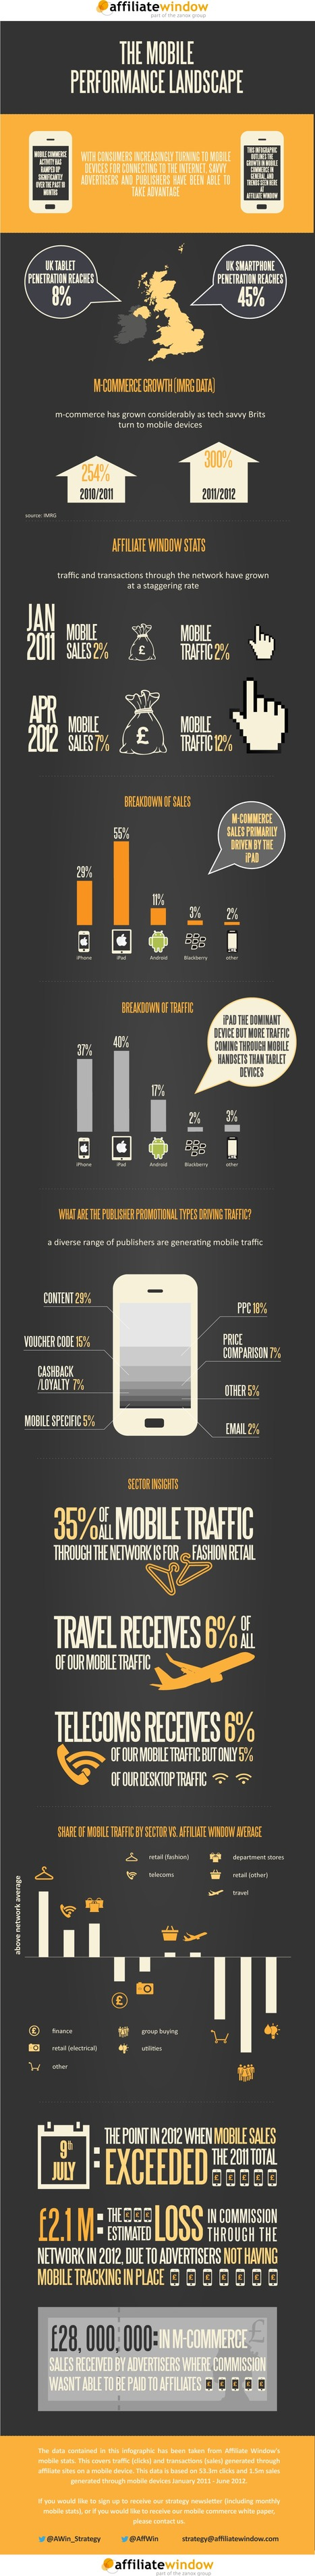 iPad - Mobile Platform getting over 55% eCommerce Sales | All Infographics | All Infographics | Scoop.it